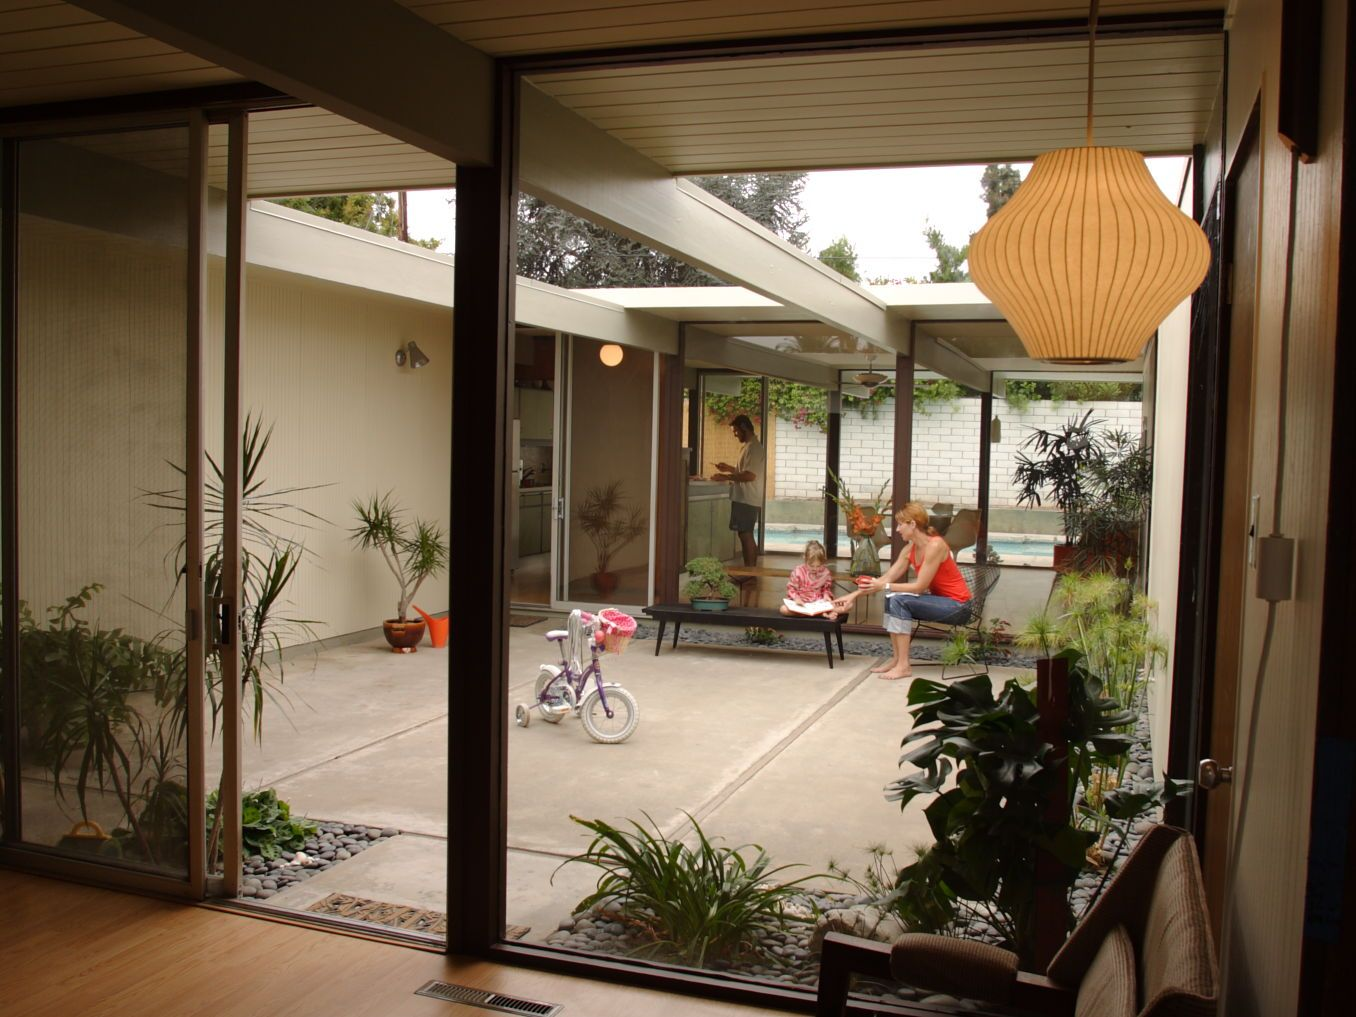 Midcentury Modern Atomic Ranch Interior Love These Wall Sized Windows And Door